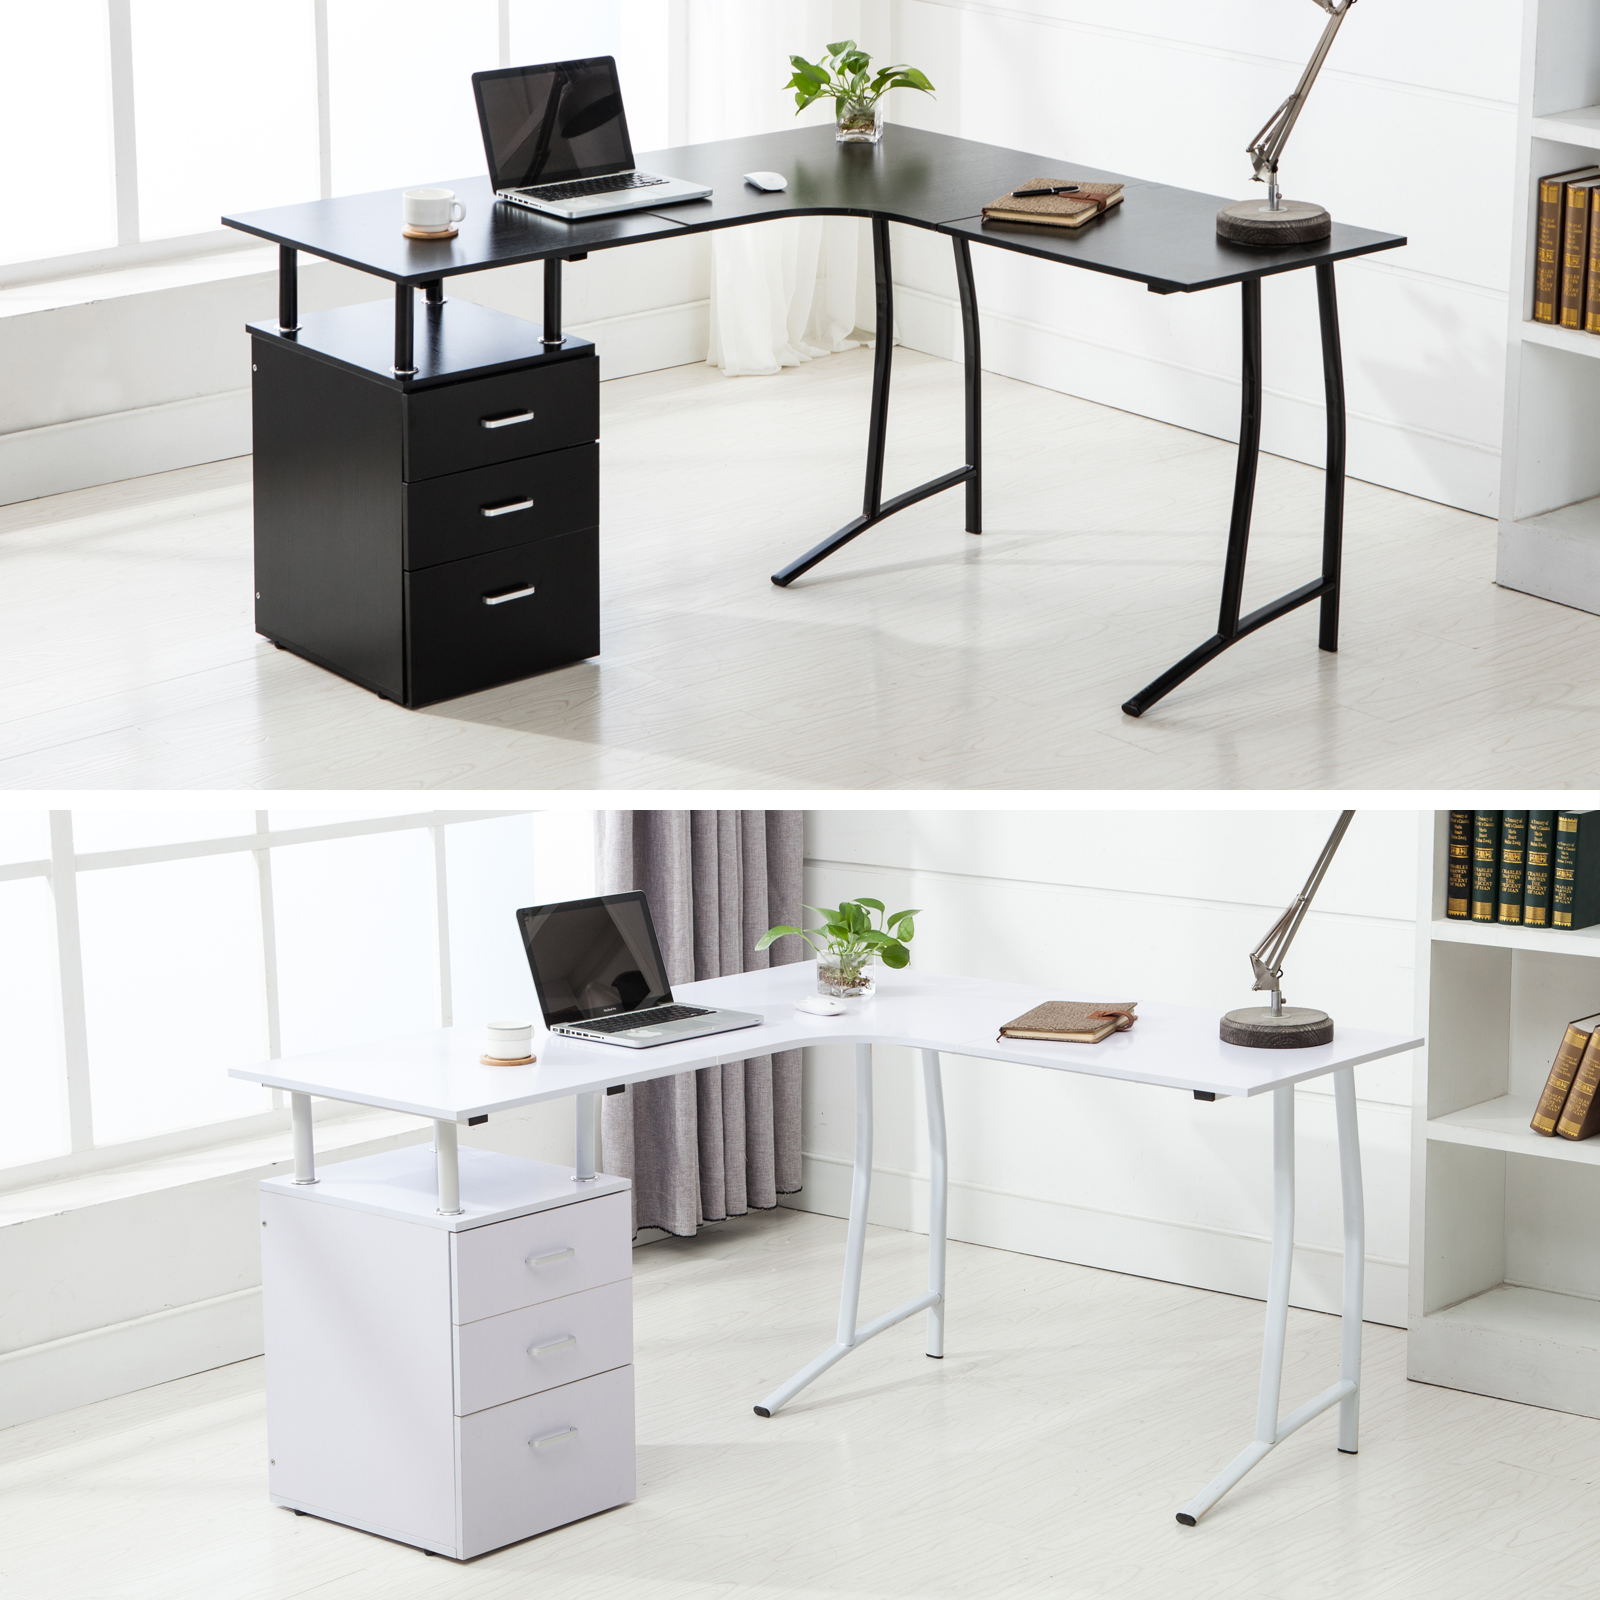 Black Corner Desk With Drawers Furniture Antique Small